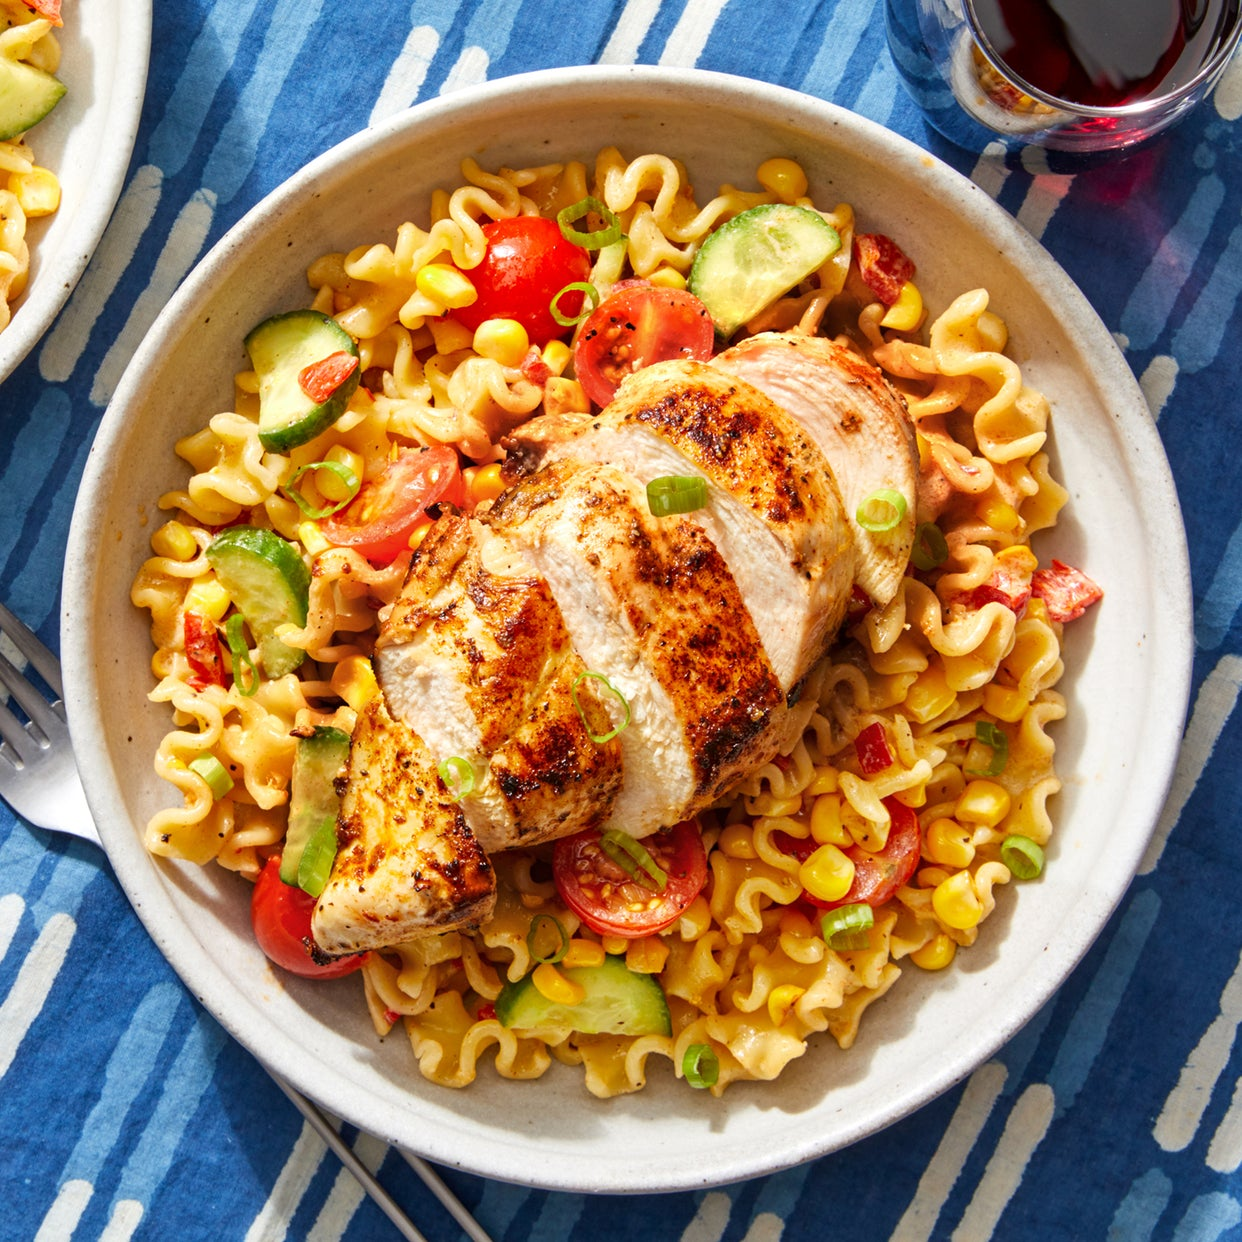 Seared Chicken & Pasta Salad with Corn, Tomatoes, & Creamy Dressing